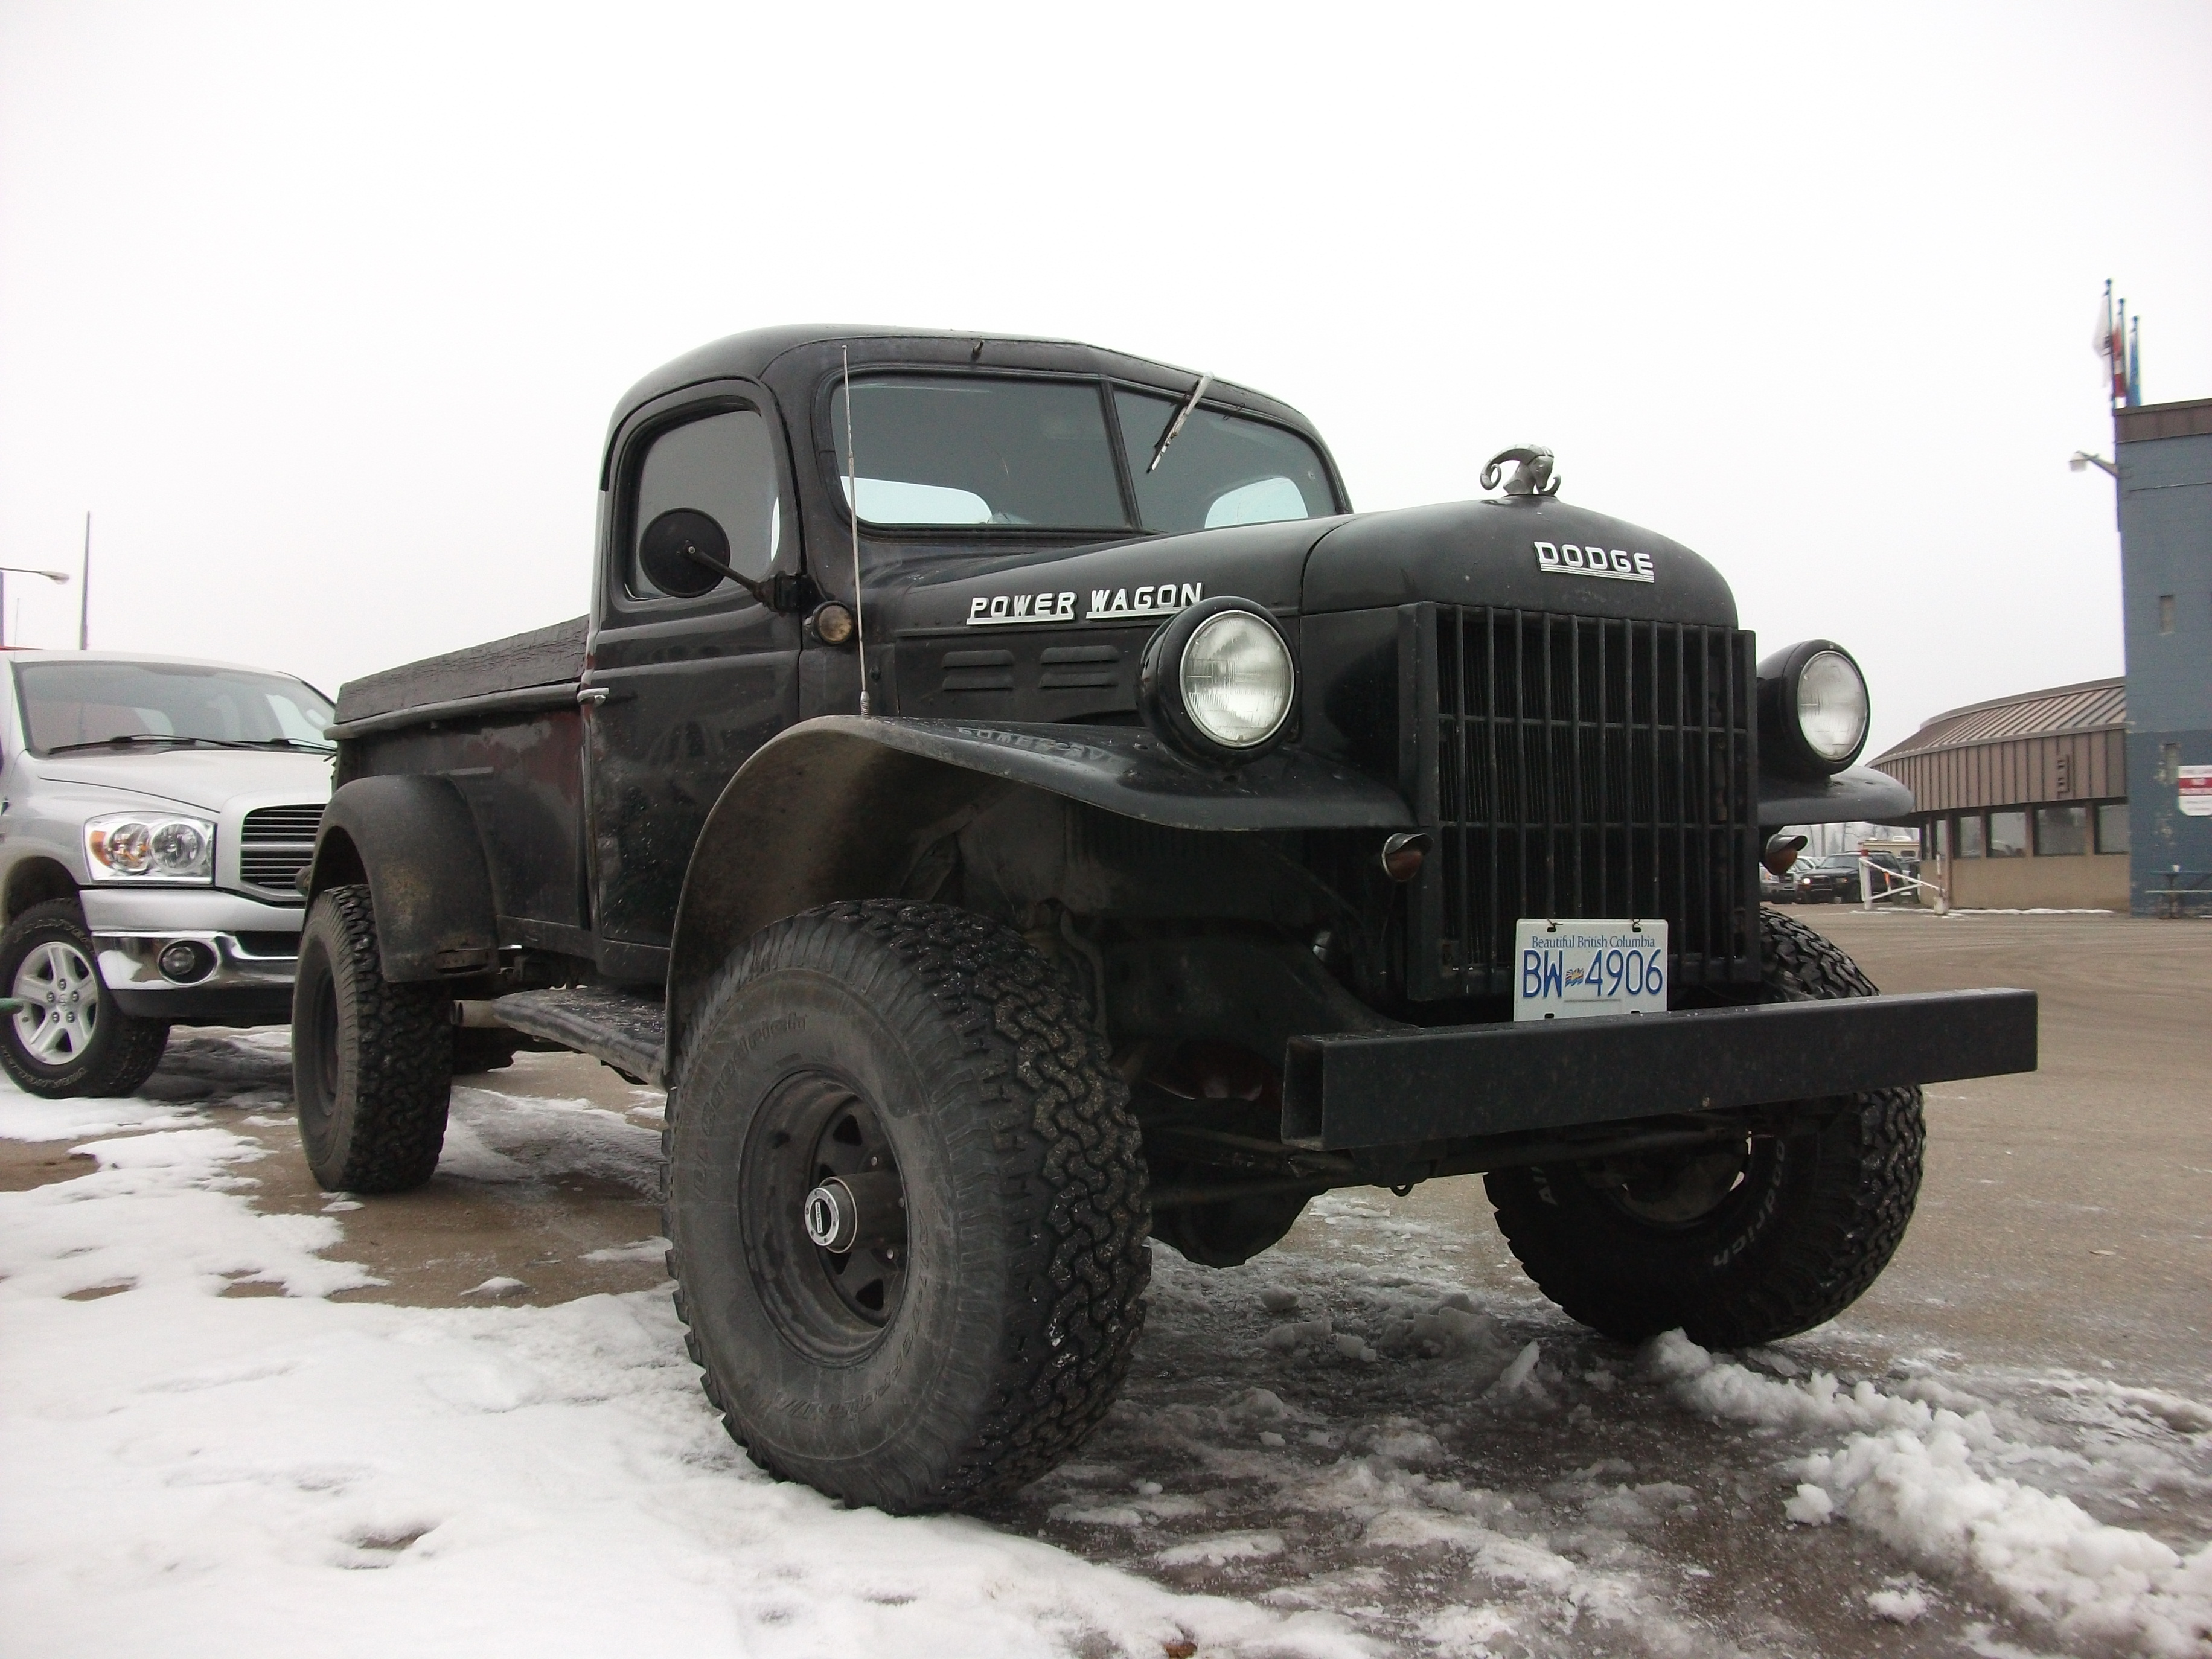 Dodge Power Wagon - Tractor & Construction Plant Wiki - The classic